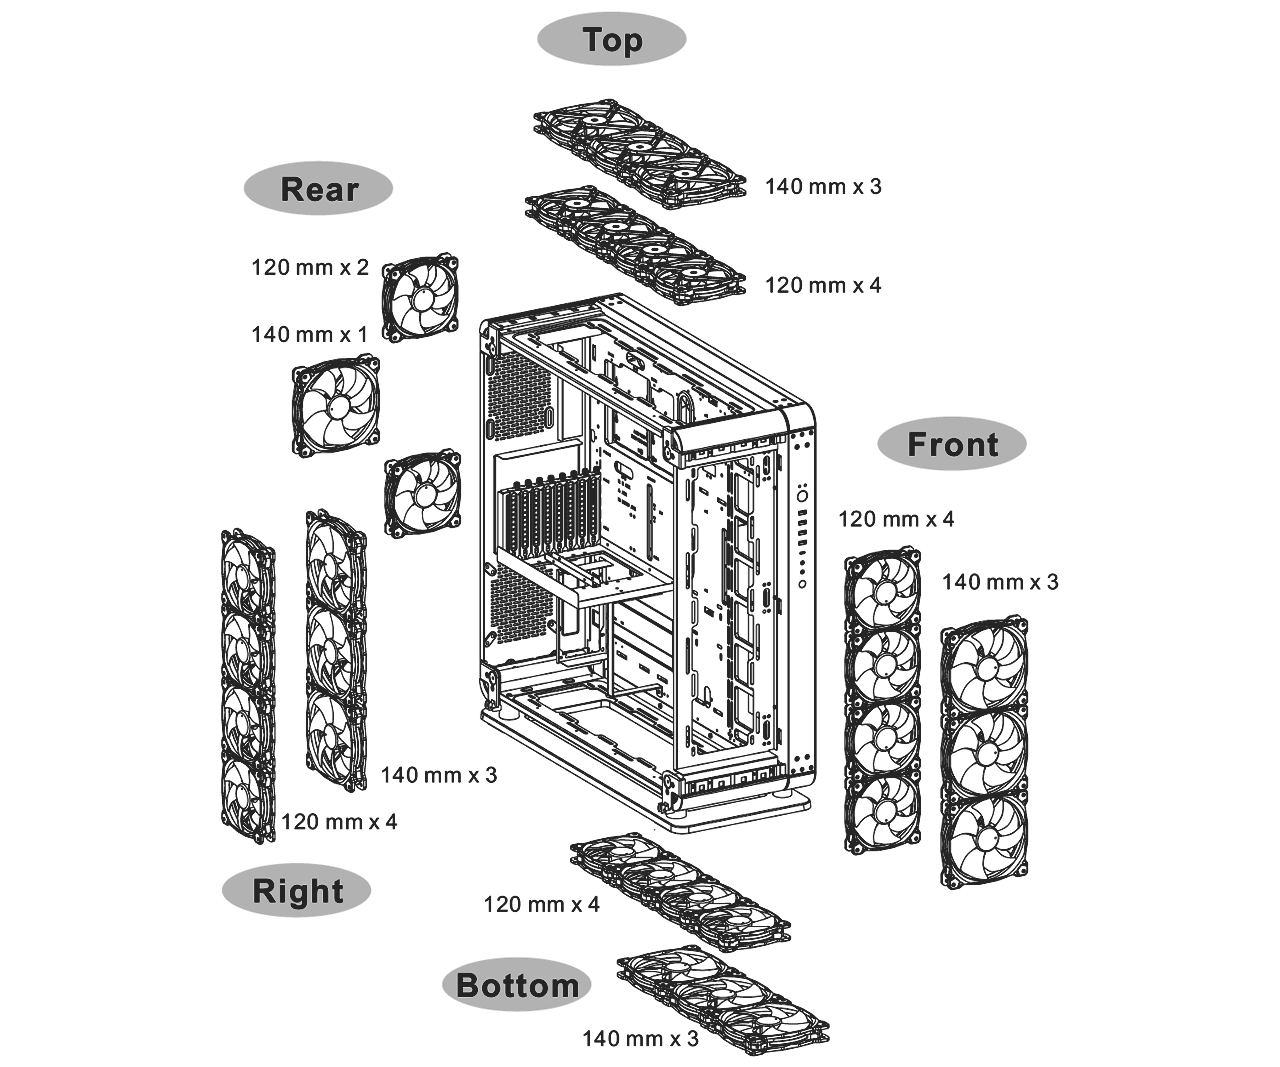 Core P8 Tempered Glass Full Tower Chassis